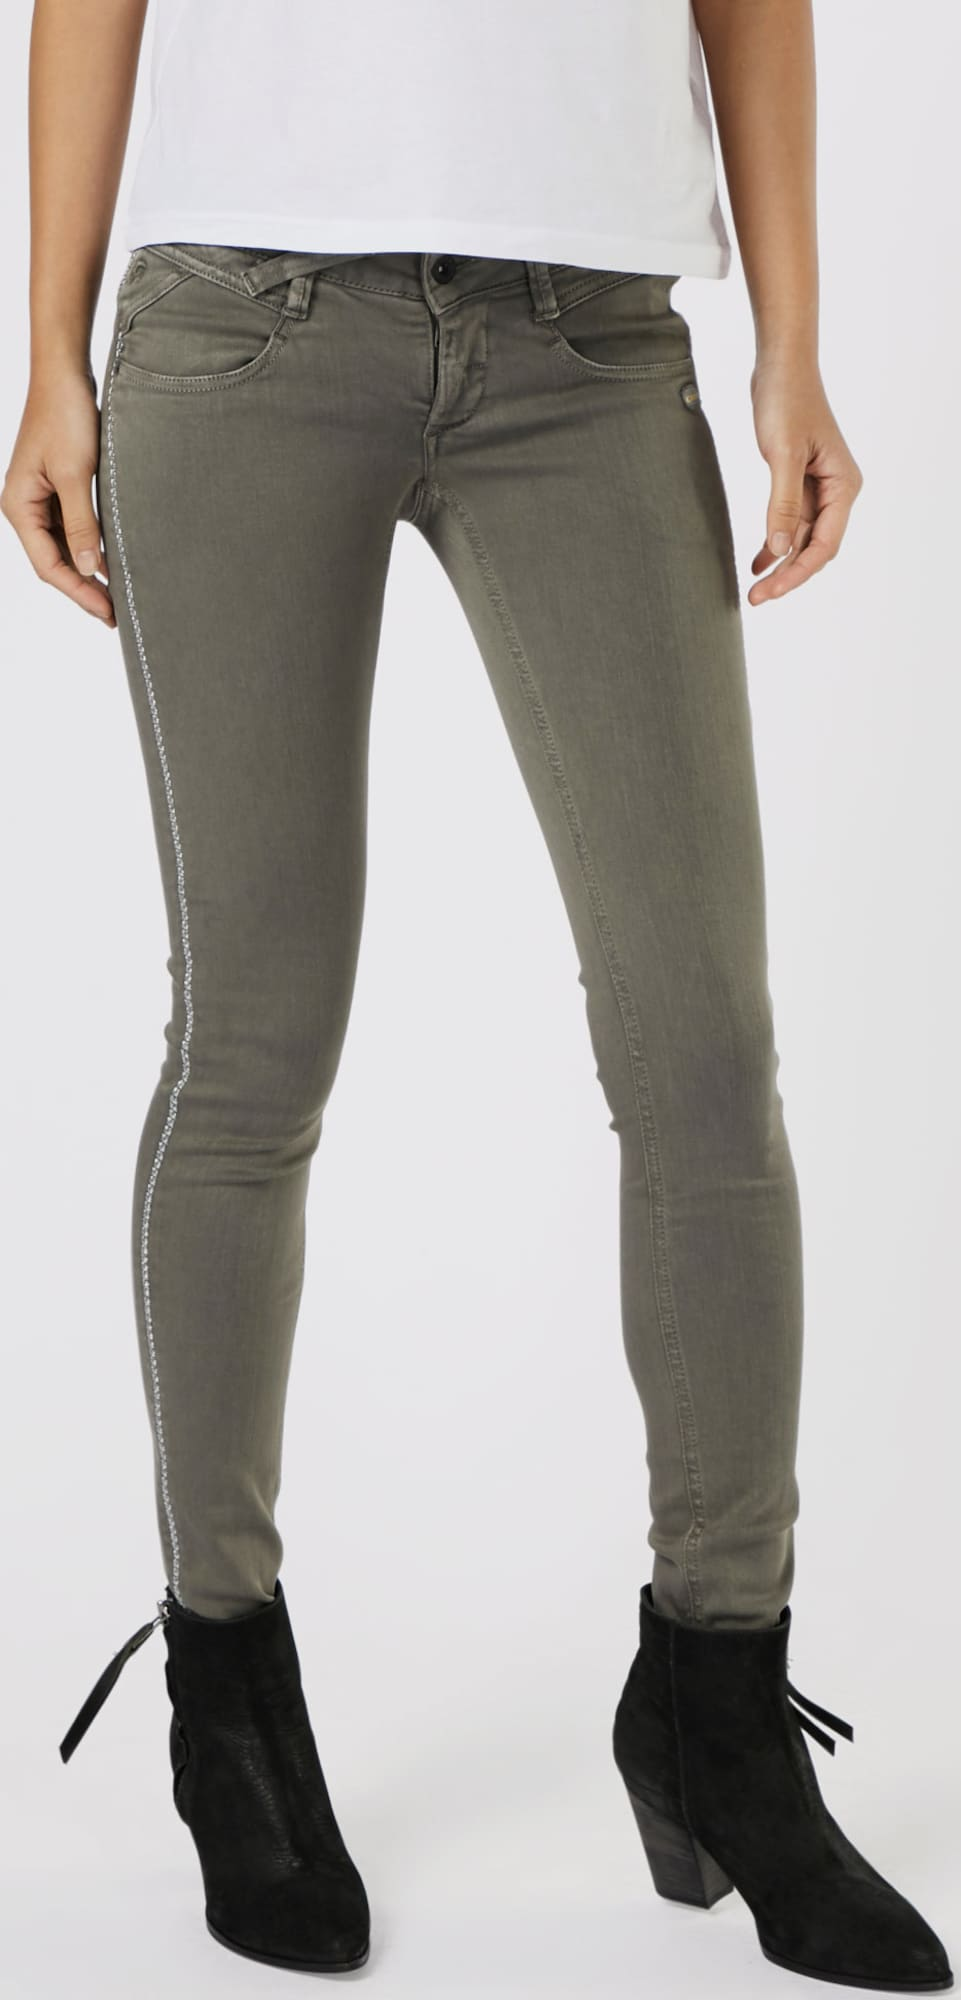 Citaten Weergeven Jeans : Gang jeans nena hiperpower rfd in groen about you